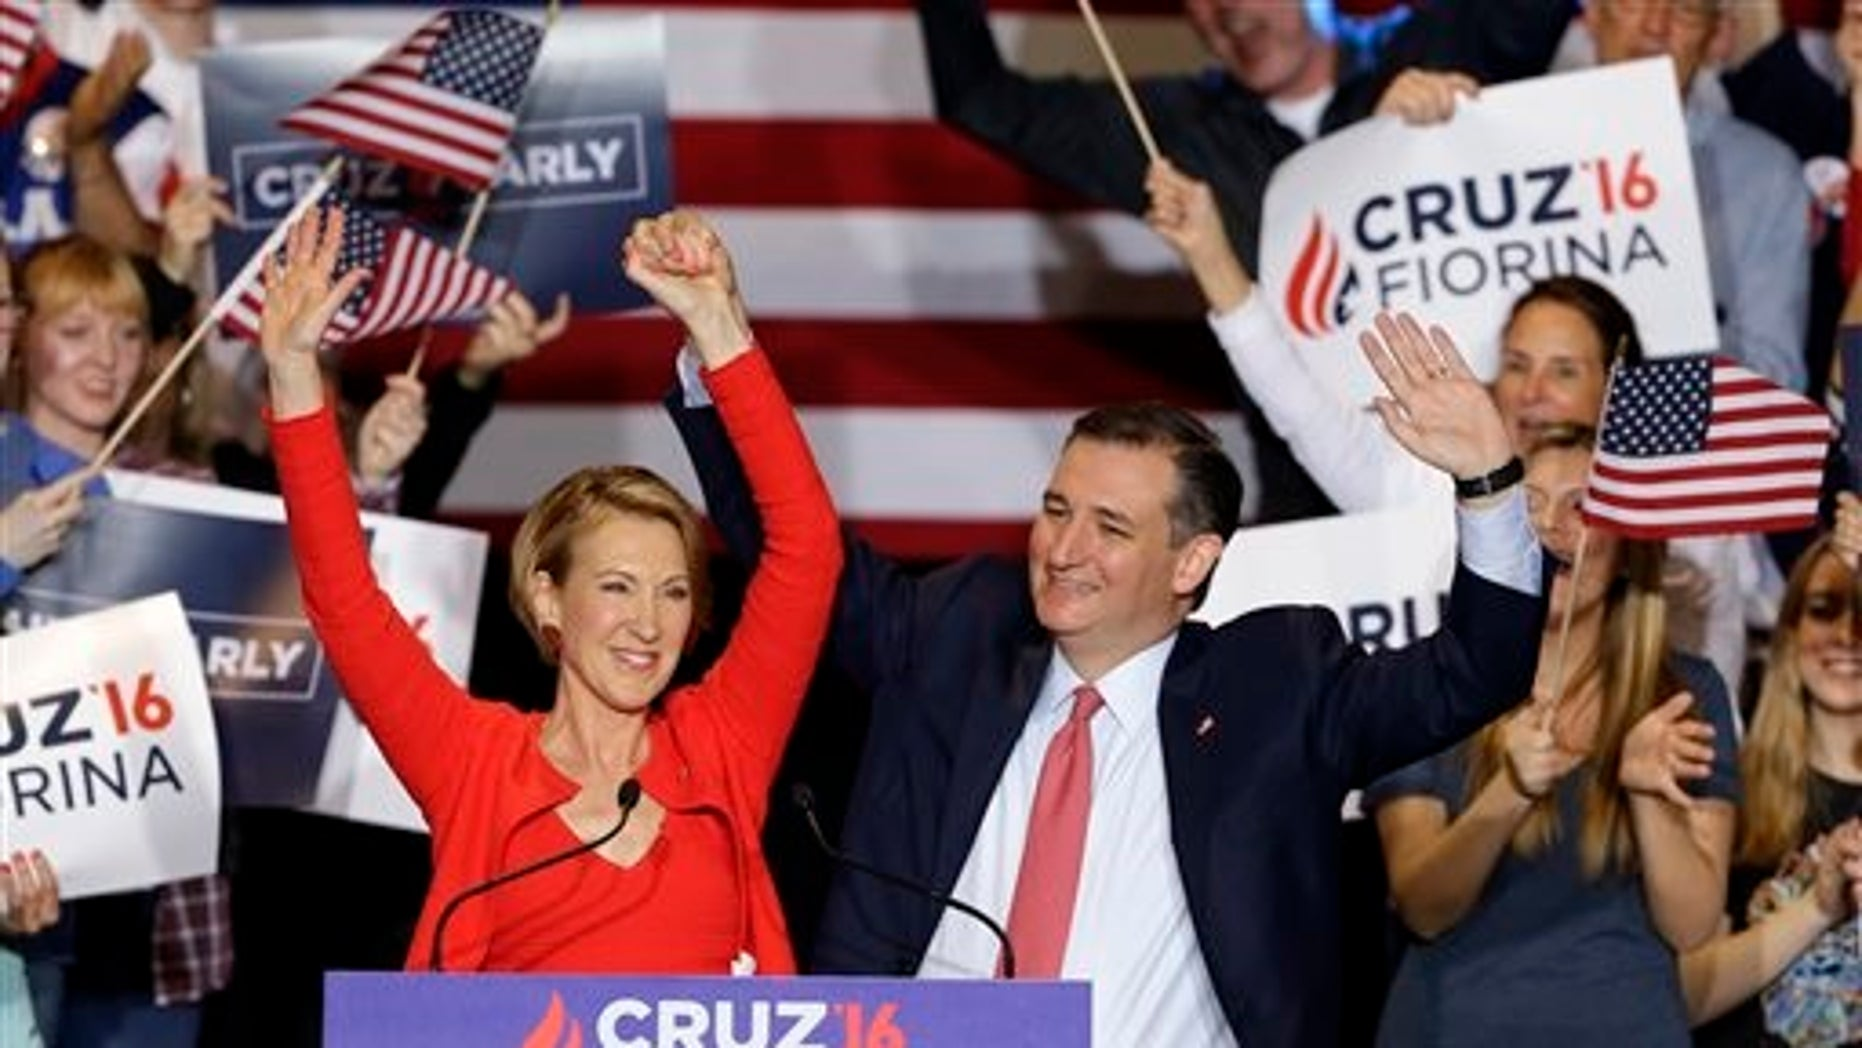 Republican presidential candidate Sen. Ted Cruz, R-Texas, joined by former Hewlett-Packard CEO Carly Fiorina, waves during a rally in Indianapolis, Wednesday, April 27, 2016, when Cruz announced he has chosen Fiorina to serve as his running mate. (AP Photo/Michael Conroy)